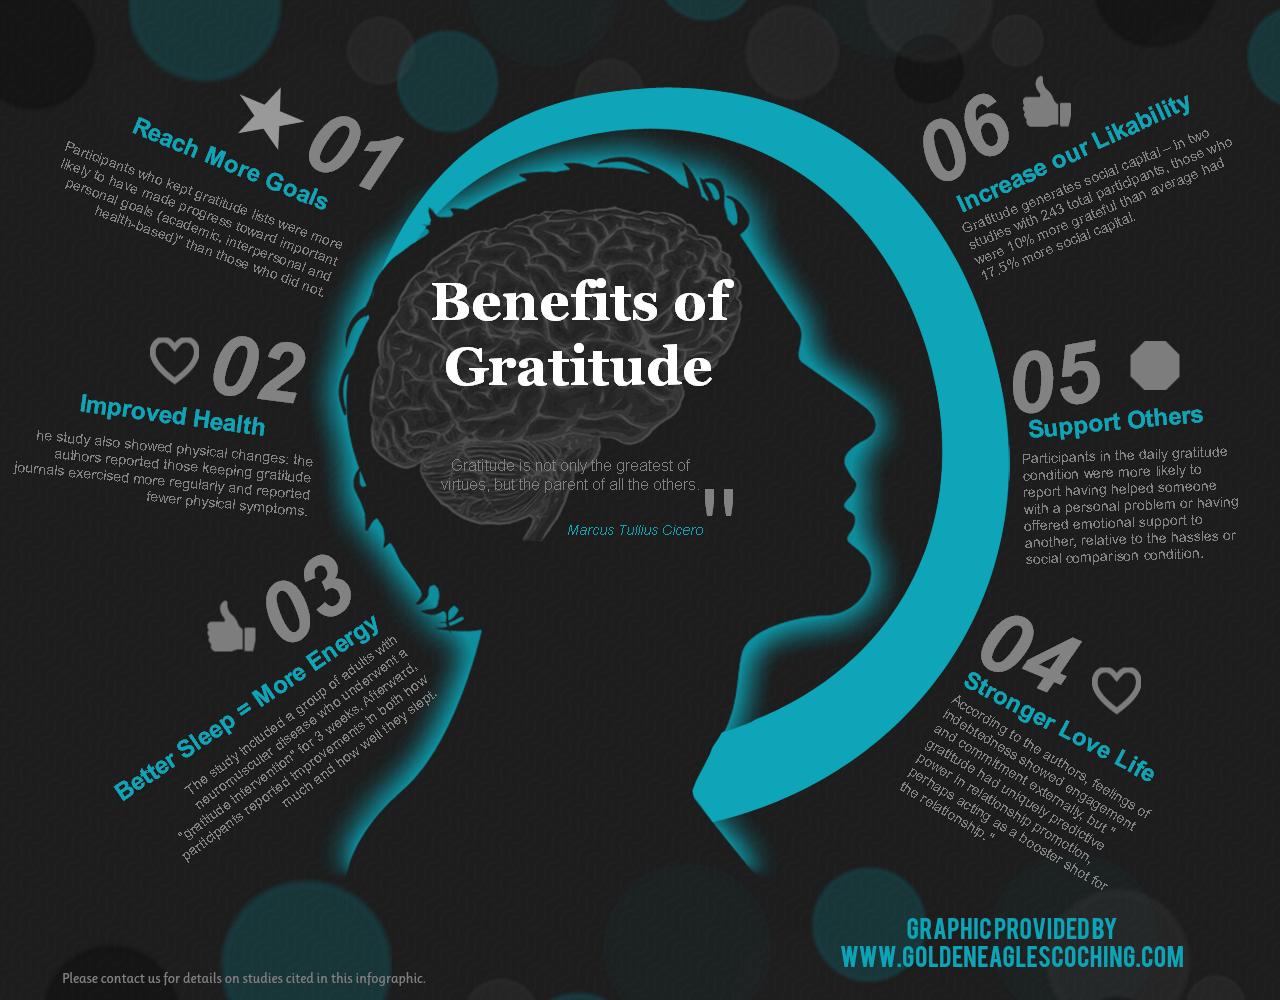 Benefits of Gratitude 10 Ways to Raise Your Vibration and Appreciate Life